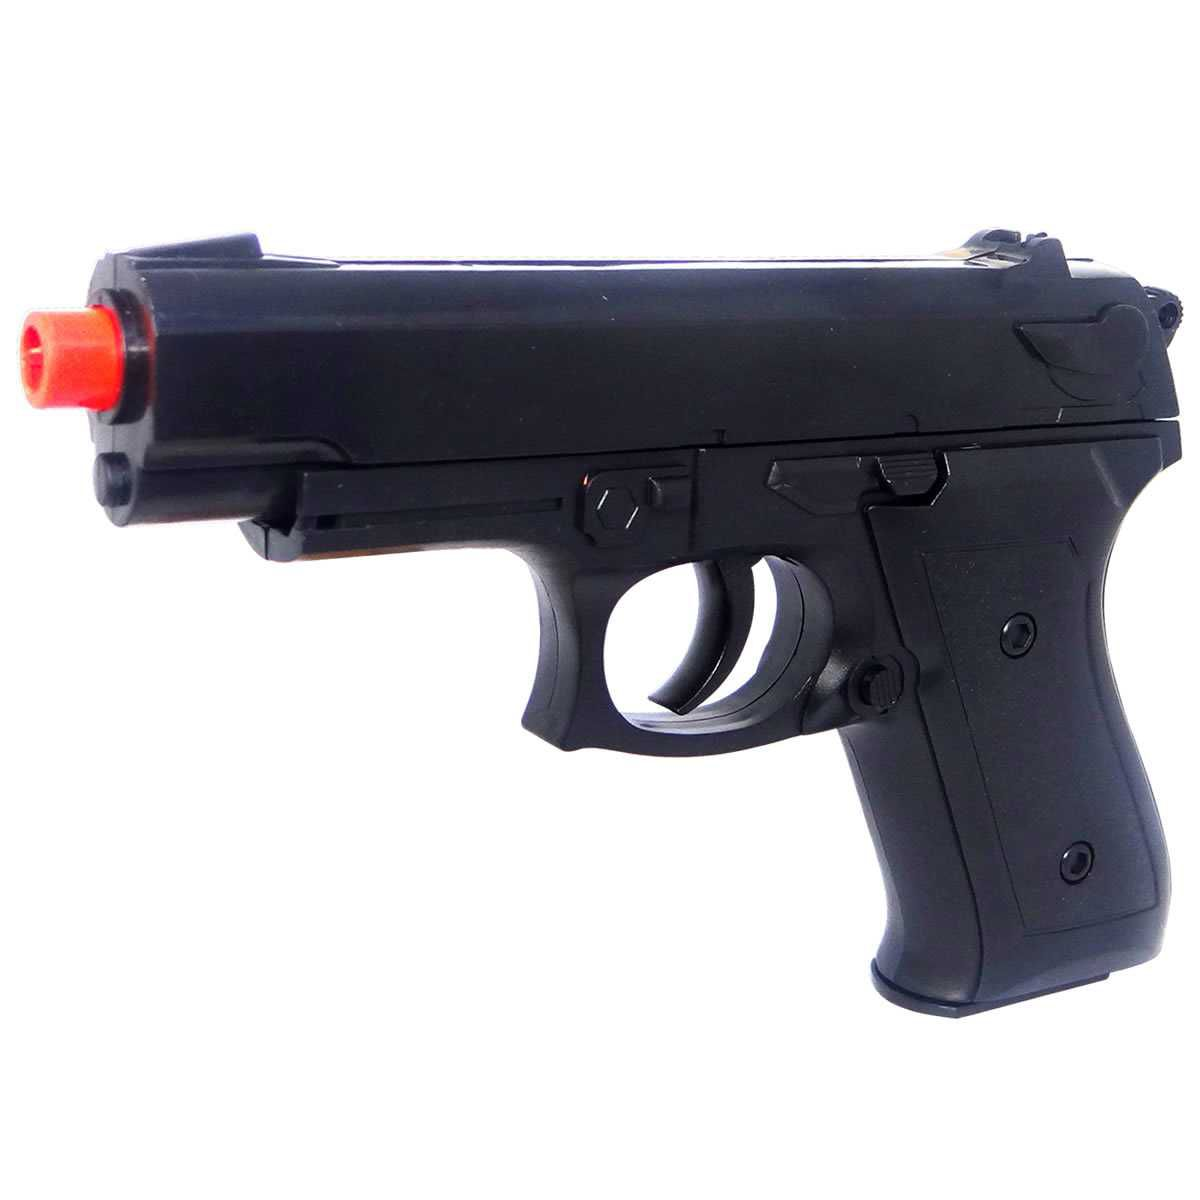 Pistola Airsoft VG P99 Mola 6MM